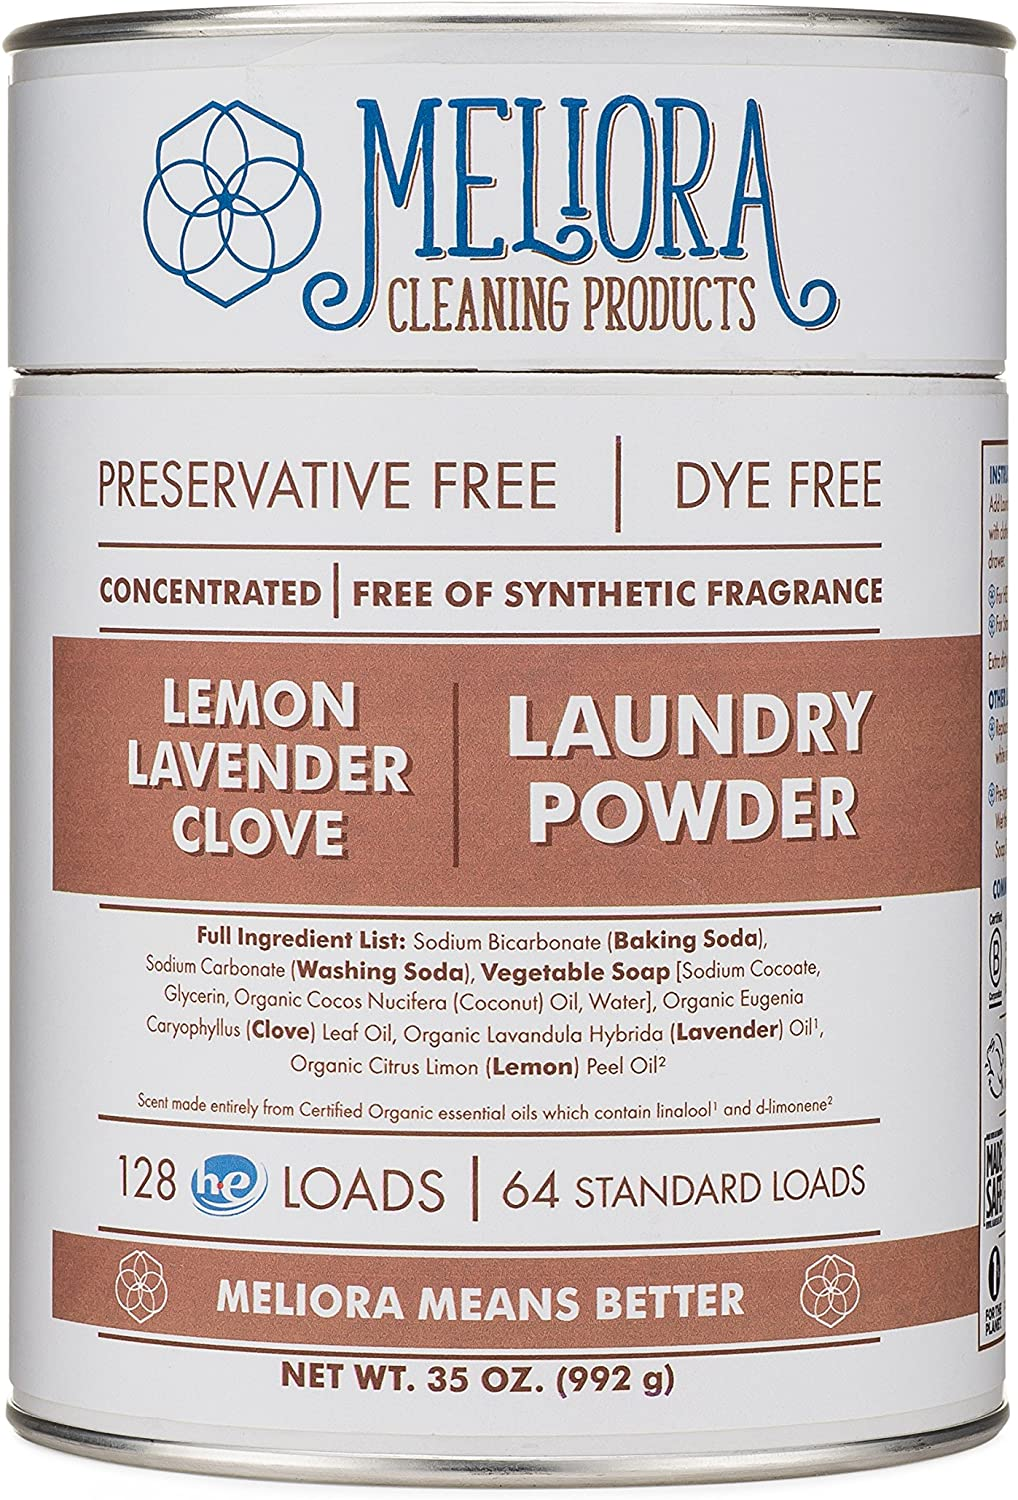 Meliora Cleaning Products Laundry Powder, Lemon-Lavender-Clove, 128 HE (64 Standard) Loads